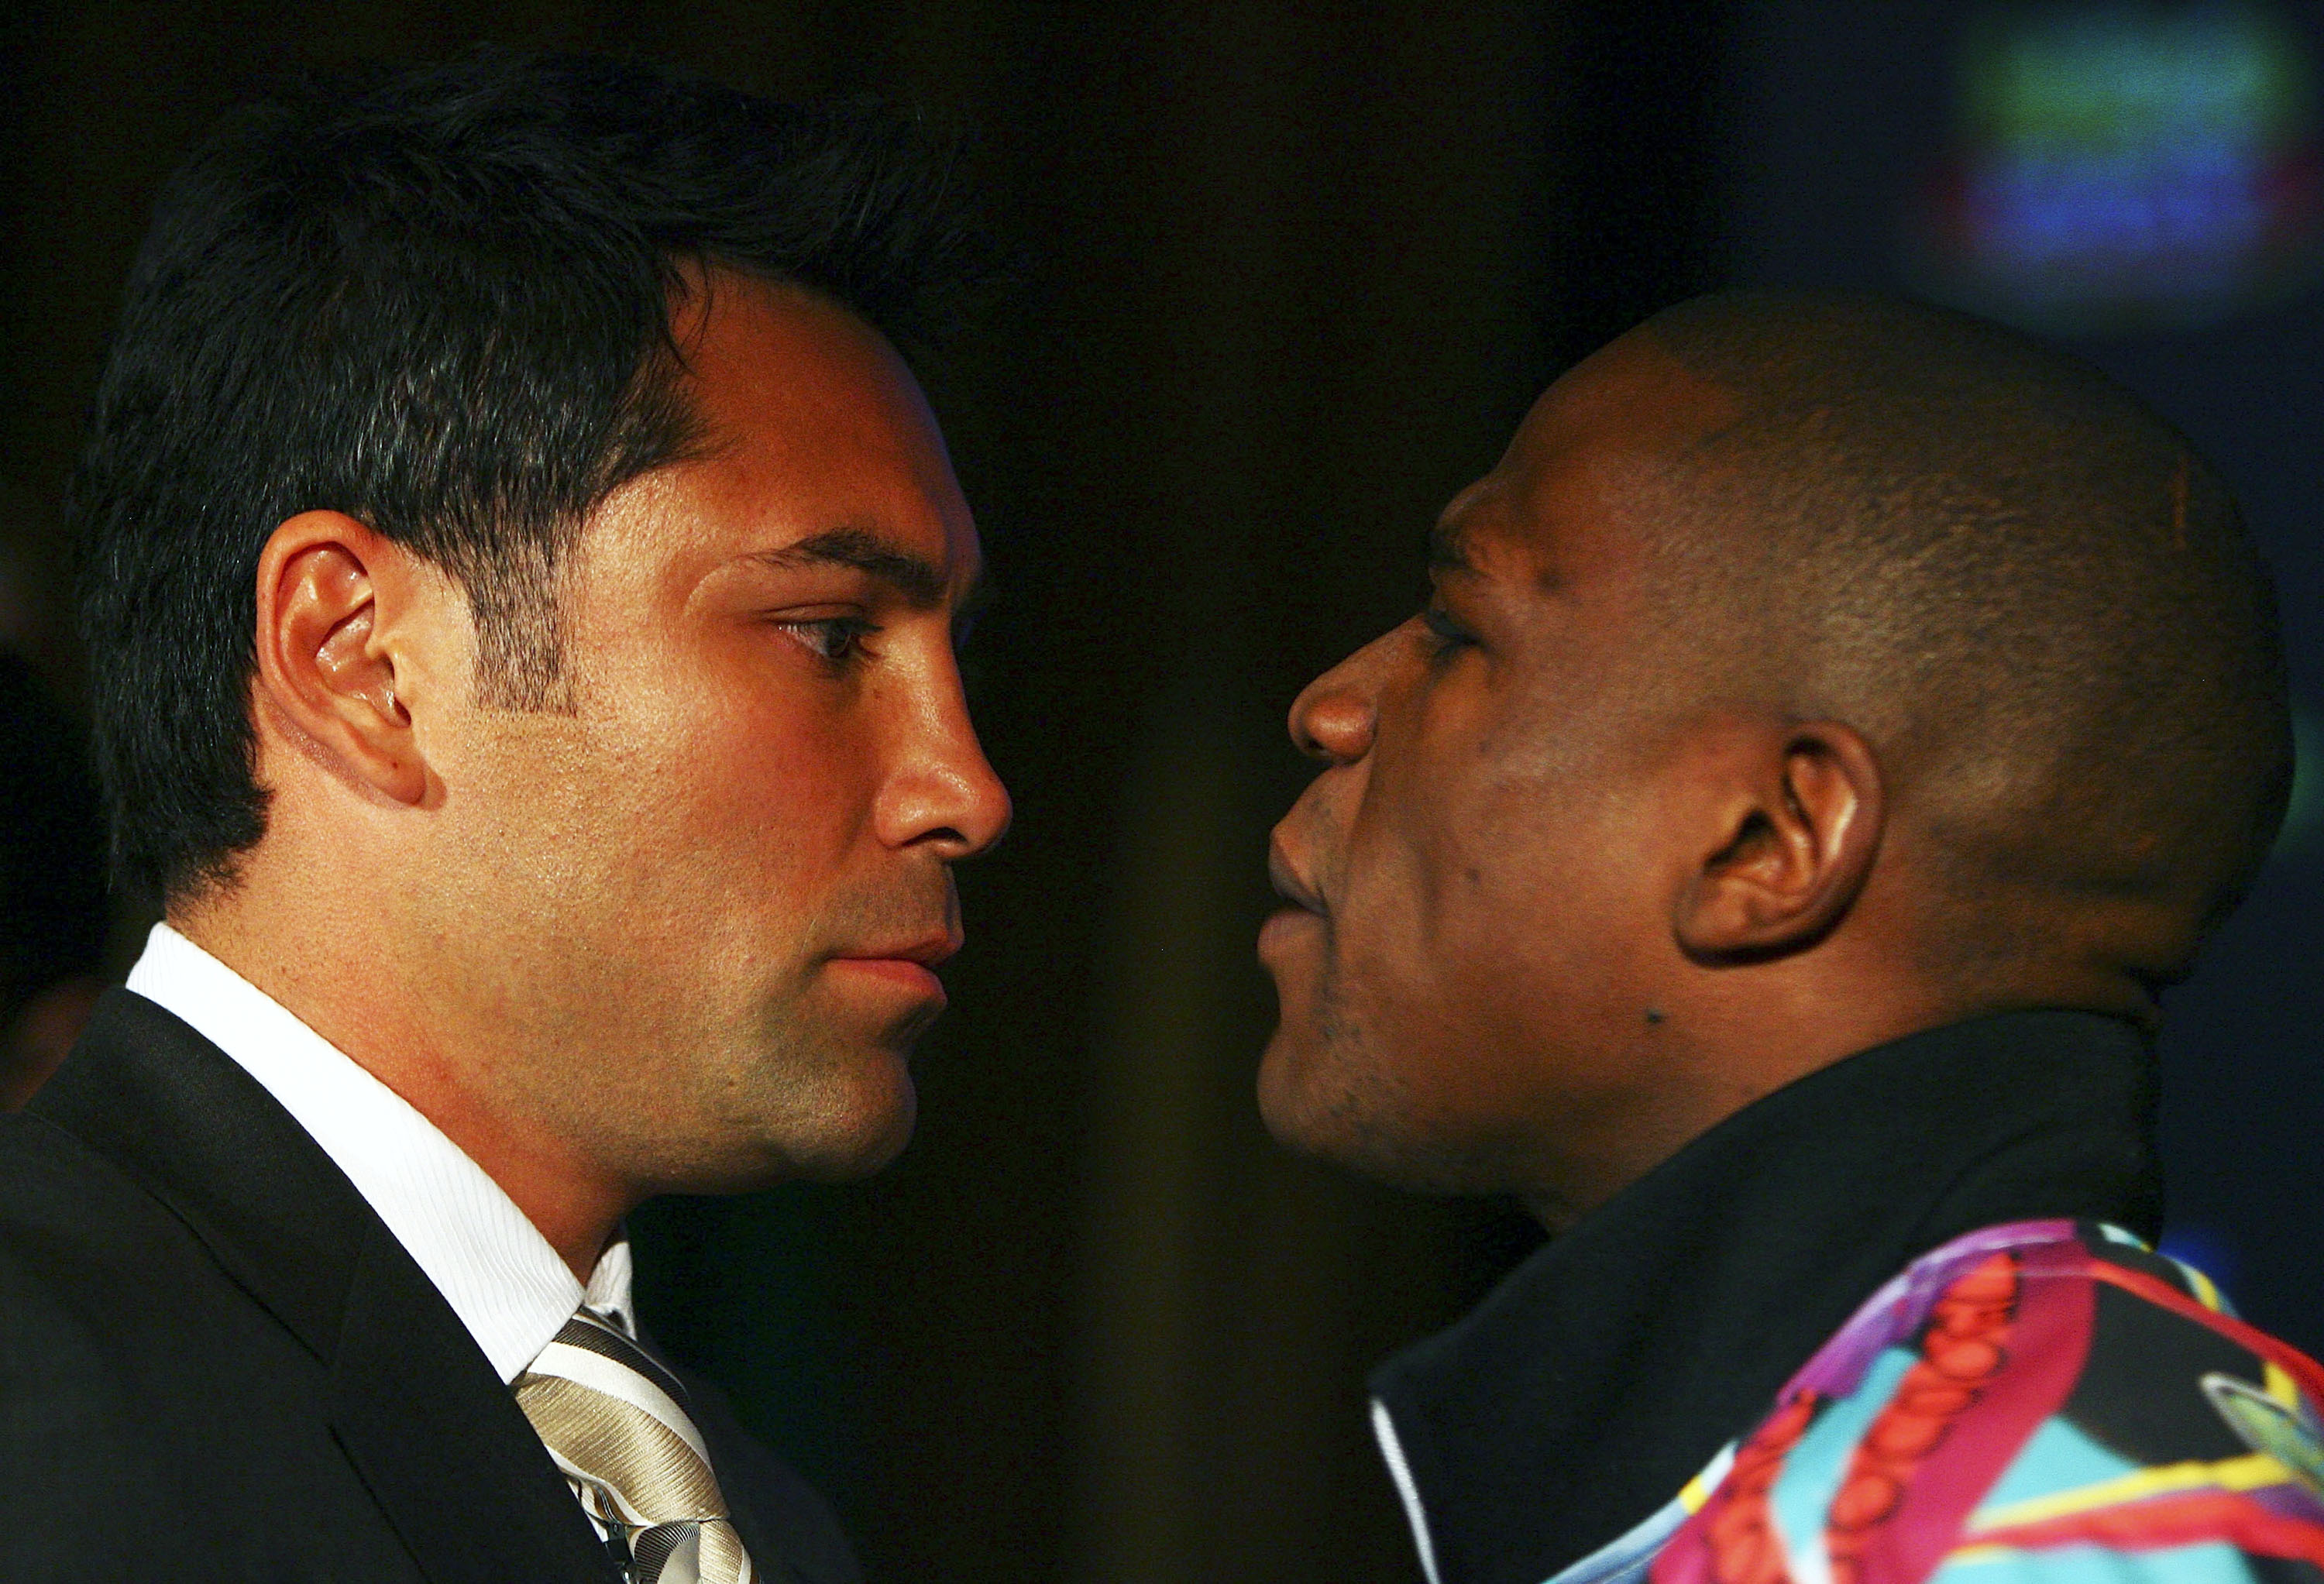 Oscar De La Hoya (on the left) being dissed by Floyd Mayweather Jr. during a press conference on February 20th 2007 in promotion of a May 5th fight.